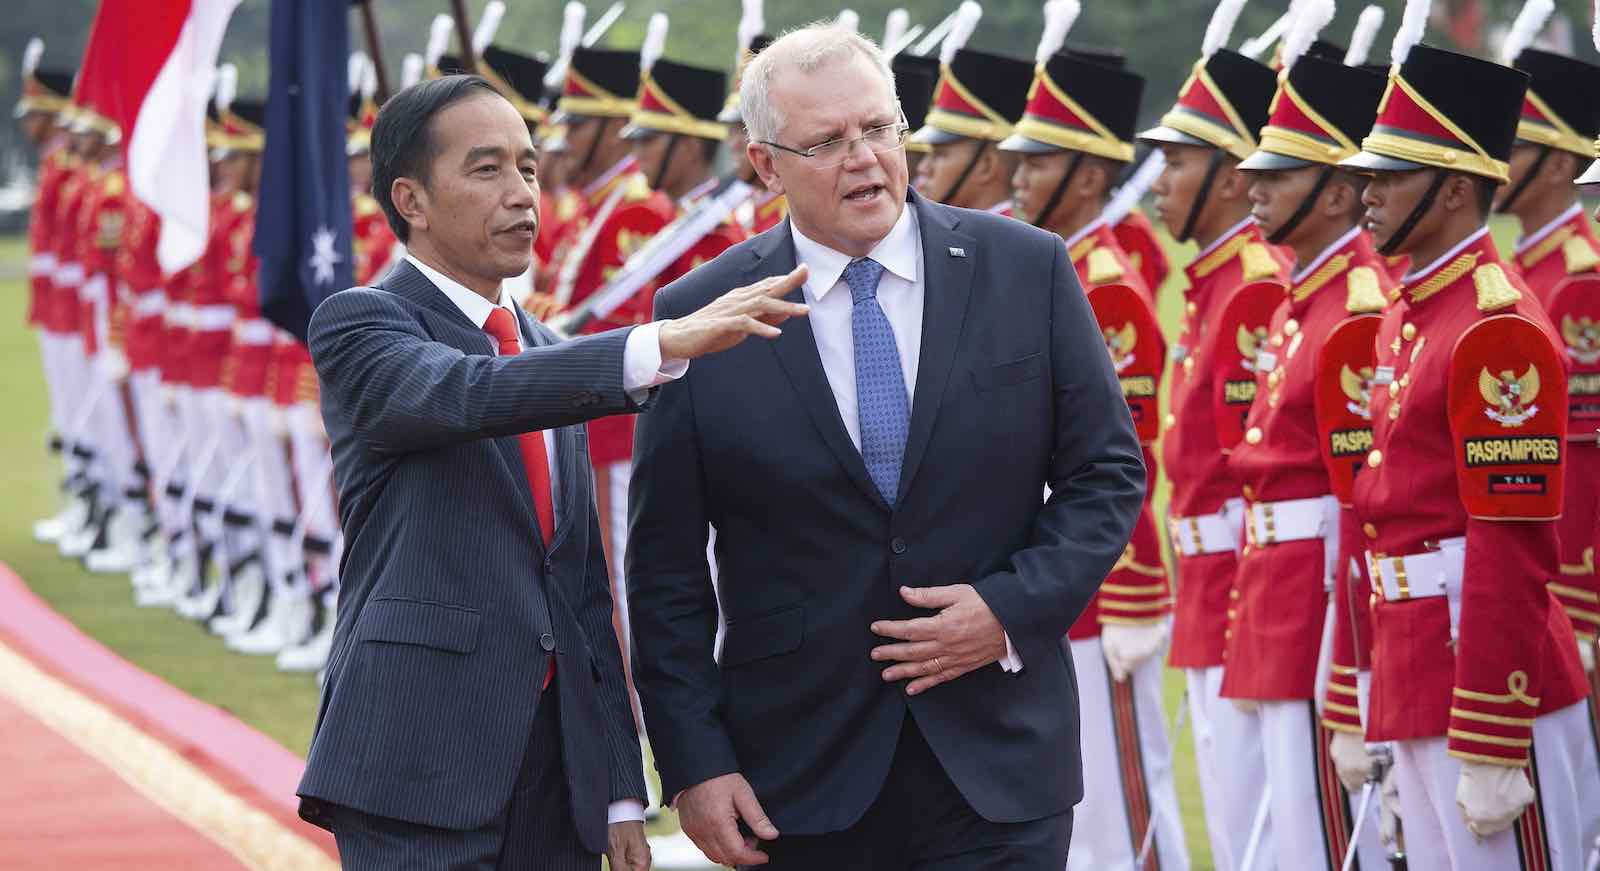 Scott Morrison, on his first overseas trip as Prime Minister, with Indonesian President Joko Widodo in Bogor, Indonesia (Photo: Ed Wray/Getty)